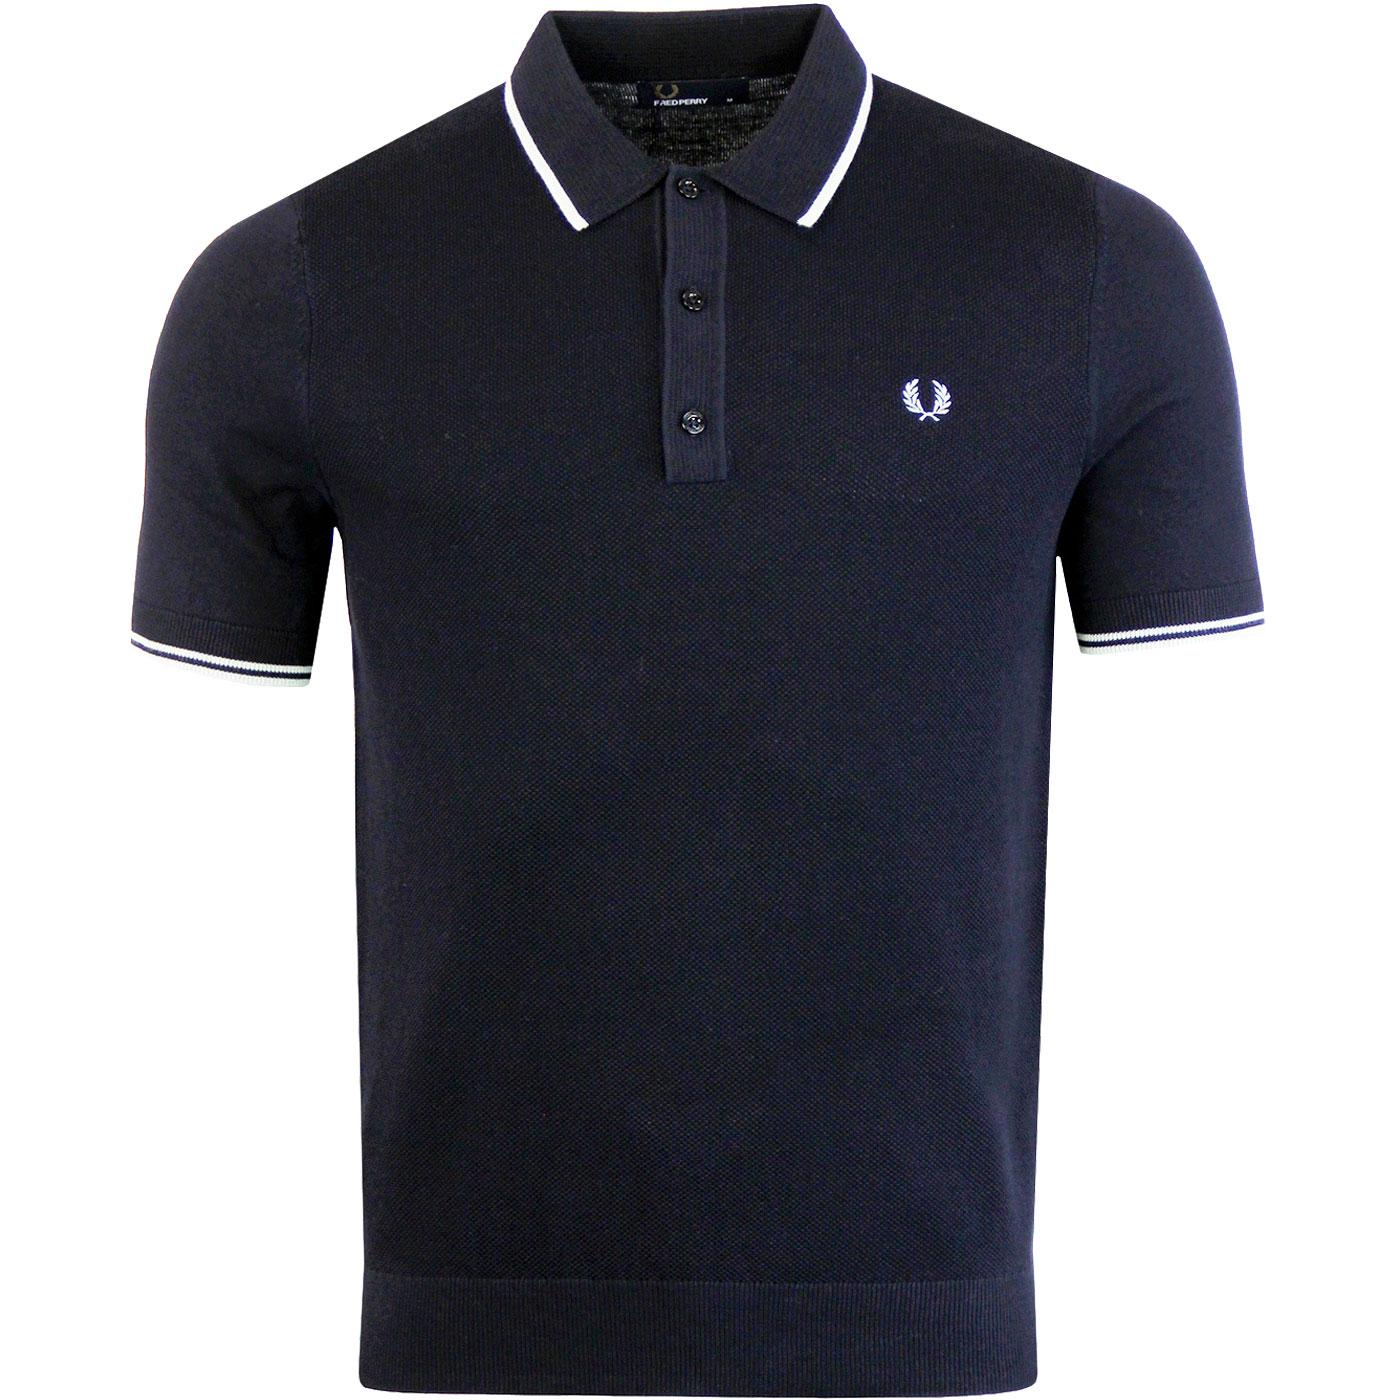 FRED PERRY Men's Mod Tipped Knitted Polo Shirt N